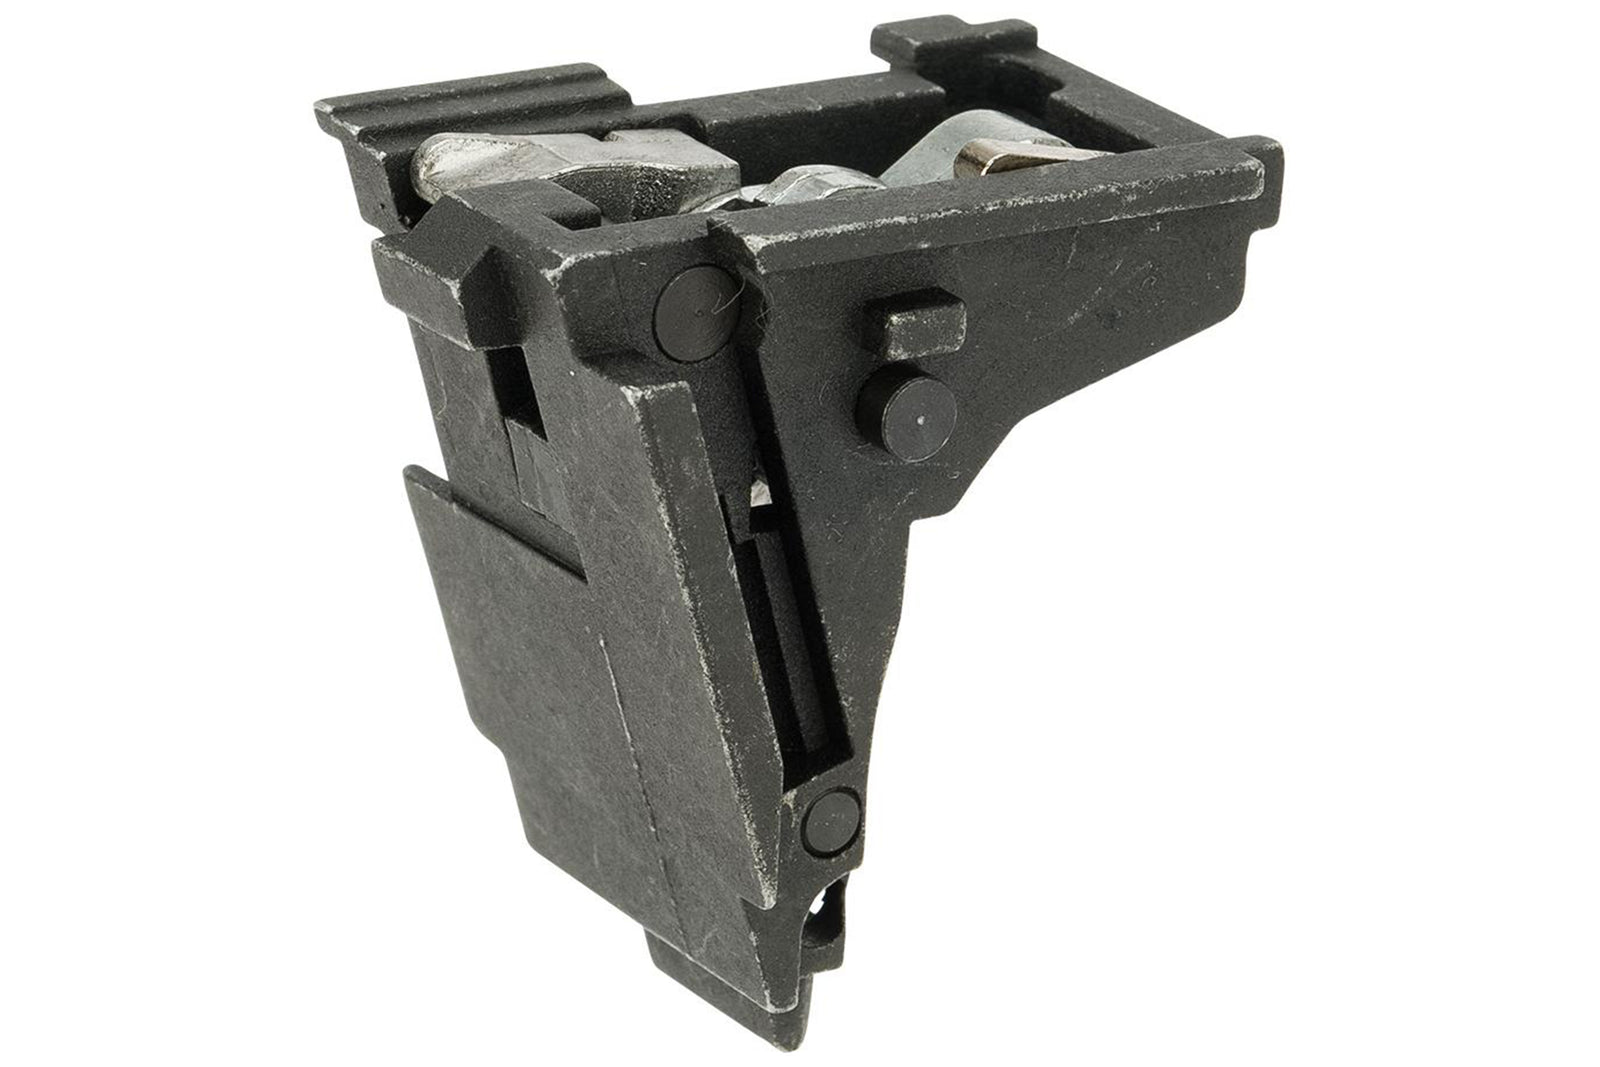 Replacement Trigger Assembly for VFC M&P9 and M&P9C Airsoft Pistols